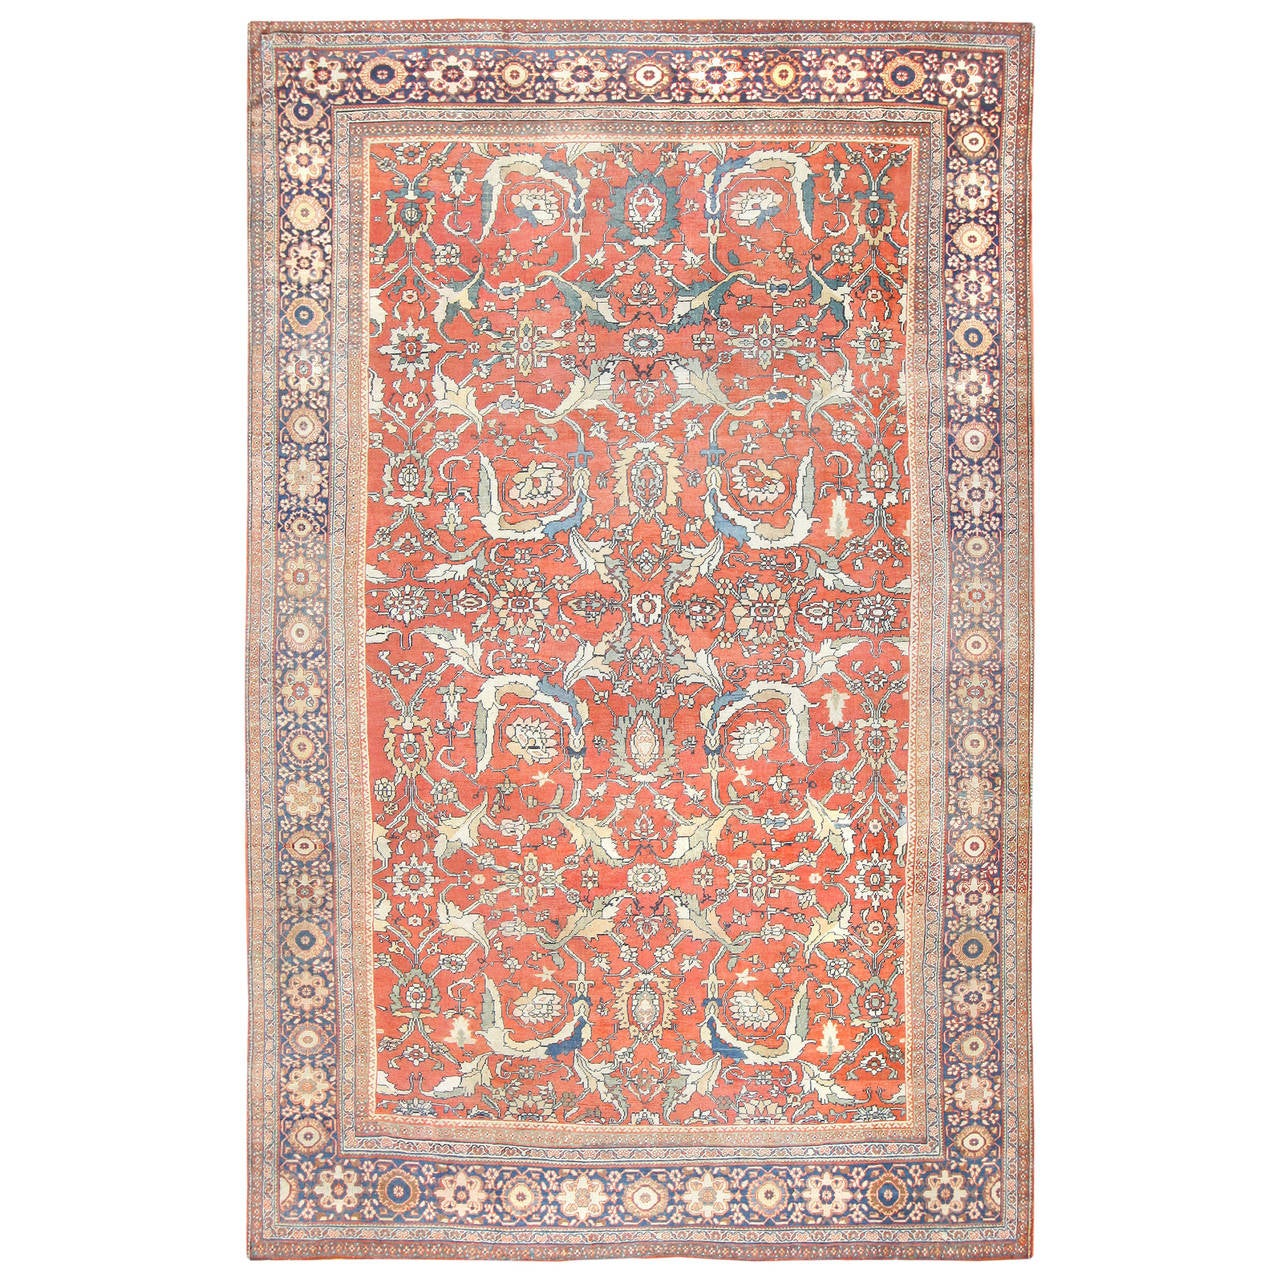 Royal Border Oriental Rug By Rug Culture: Beautiful Rust Background Antique Sultanabad Persian Rug